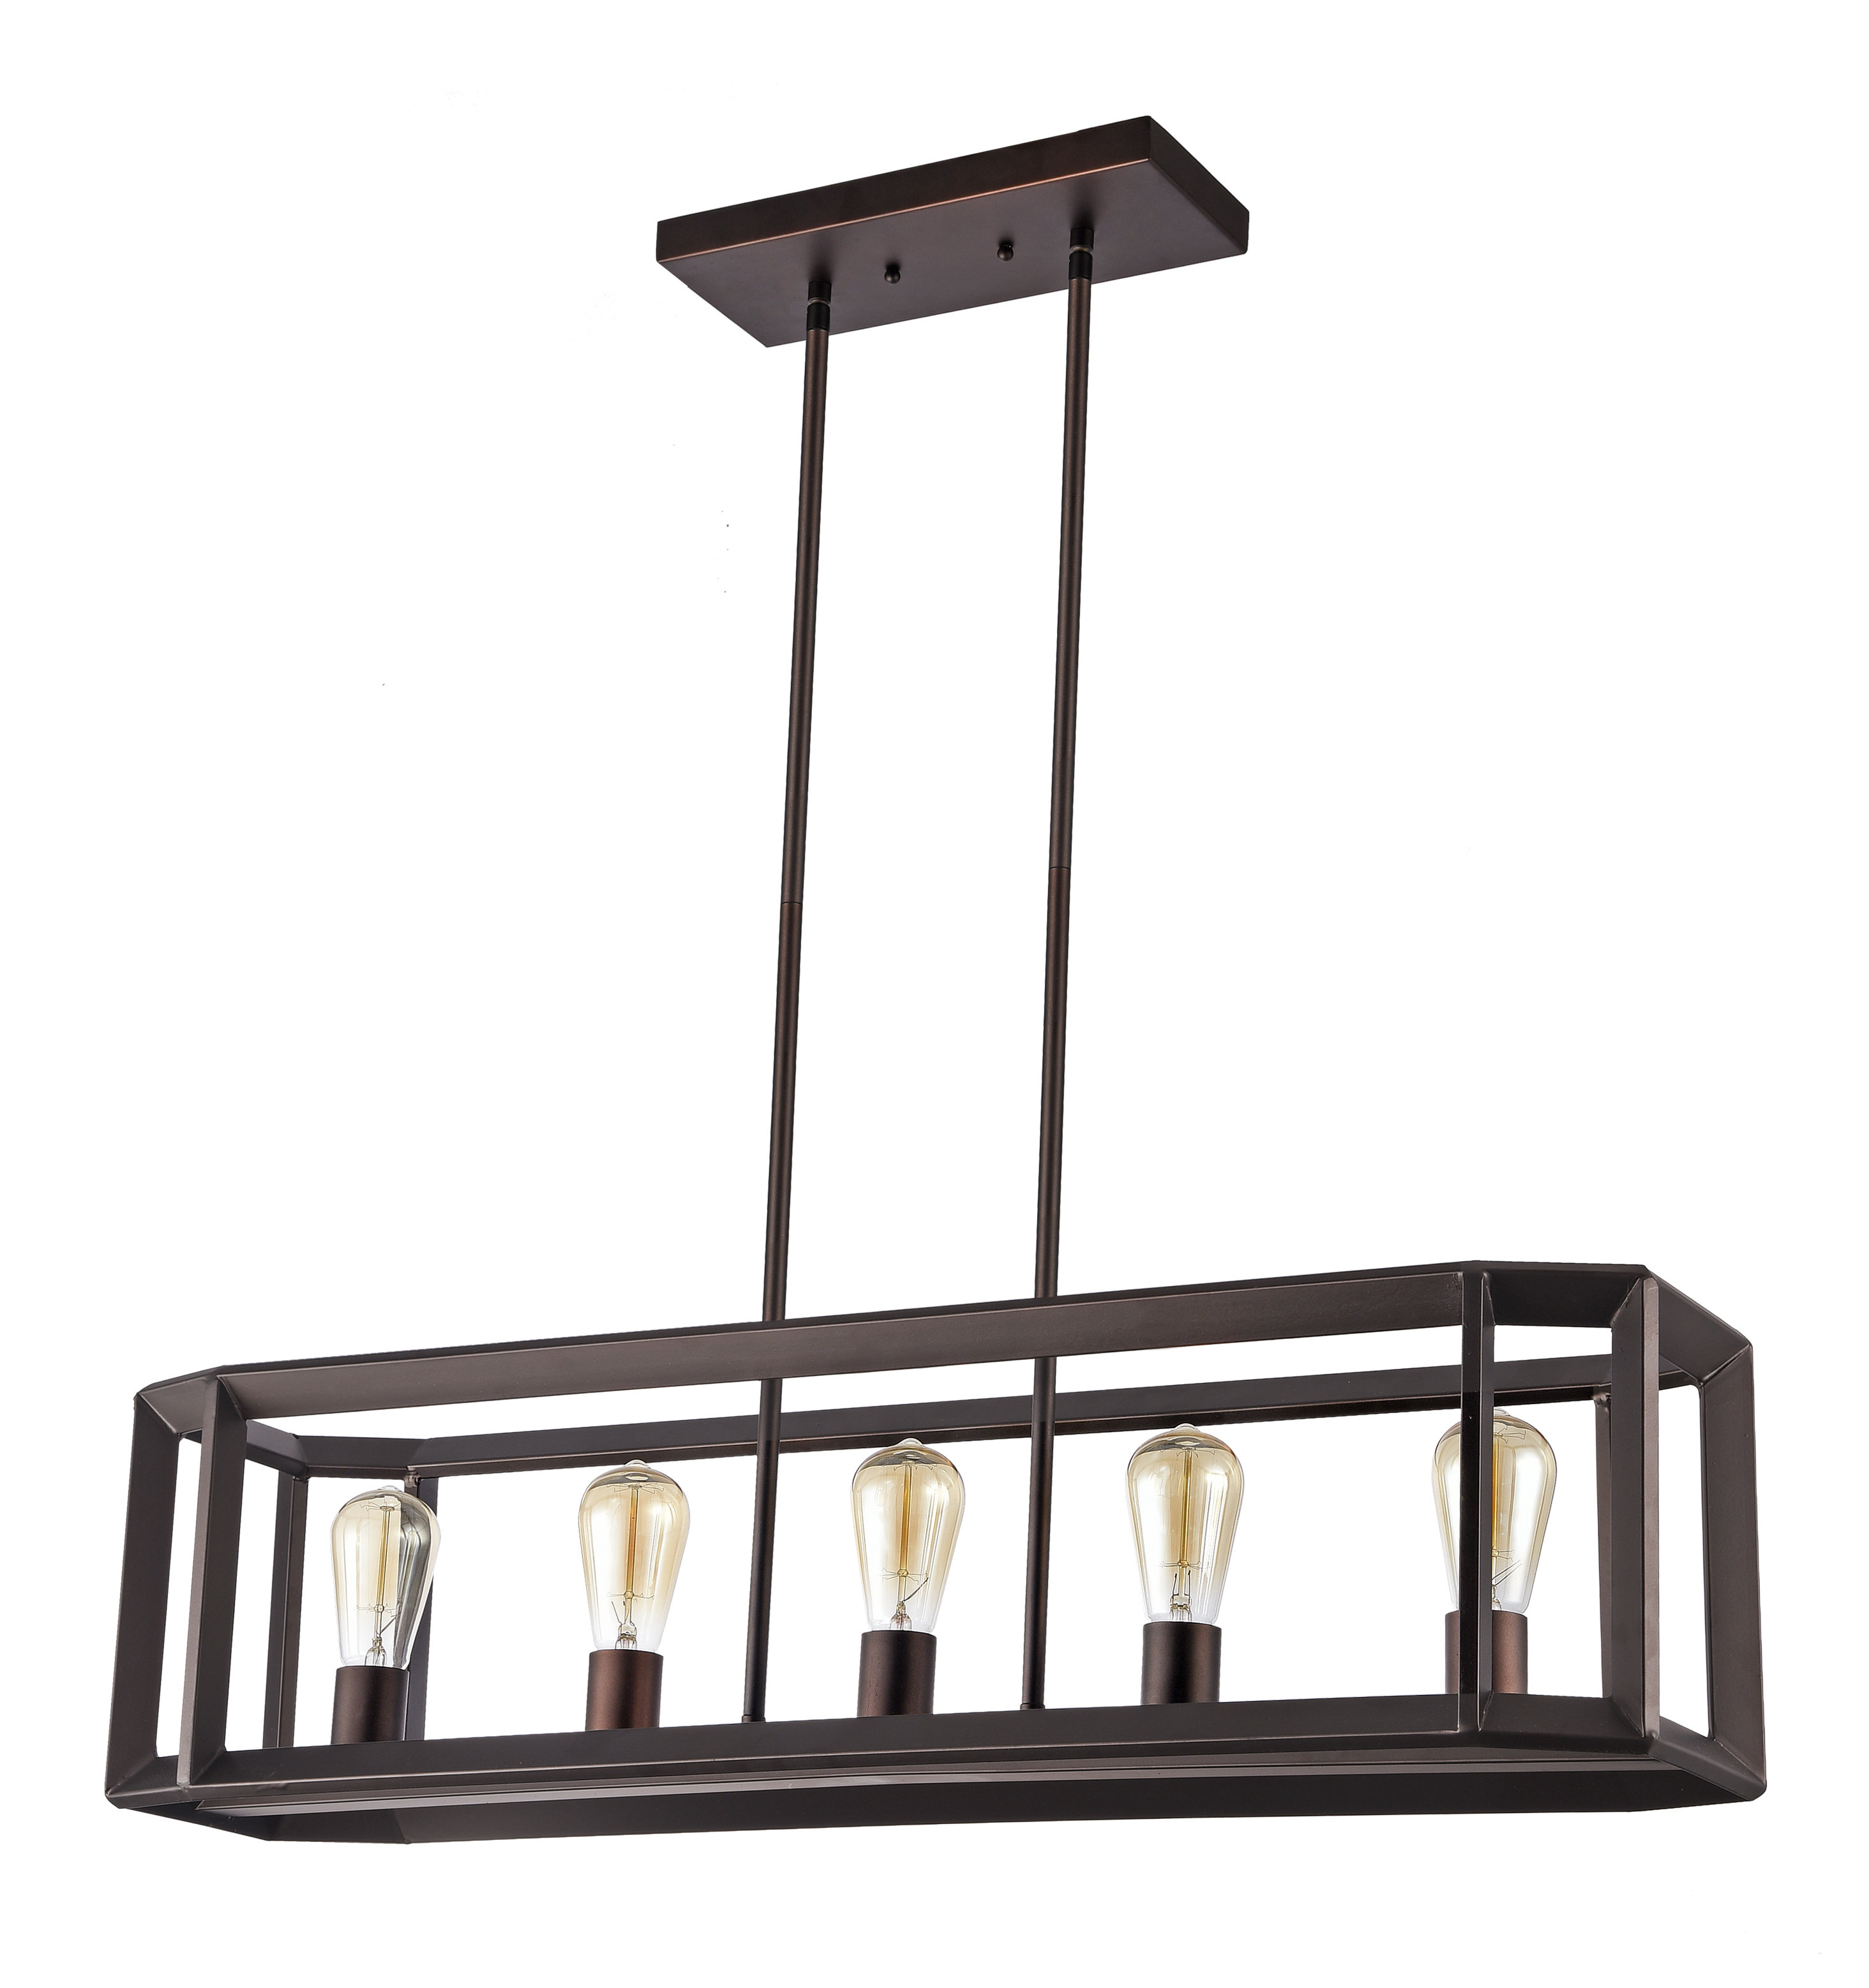 Best And Newest Bouvet 5 Light Kitchen Island Linear Pendant With Delon 5 Light Kitchen Island Linear Pendants (View 2 of 20)